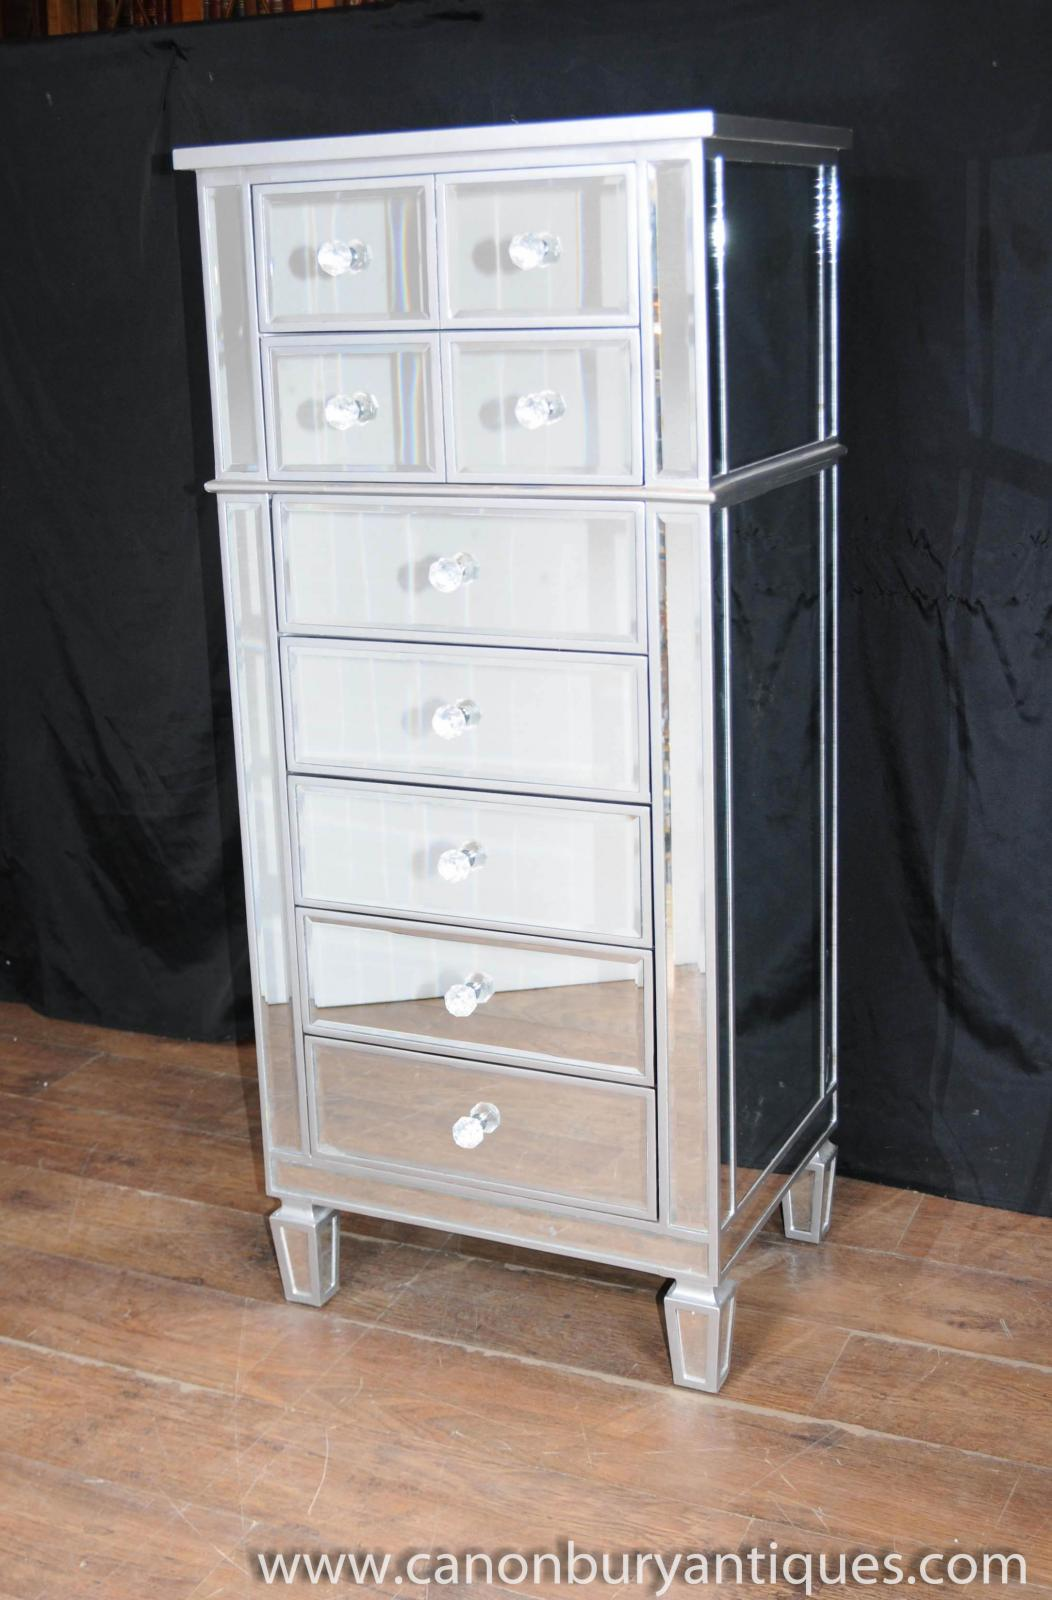 Art deco mirror chest drawers tall boy mirrored furniture for Commode miroir art deco